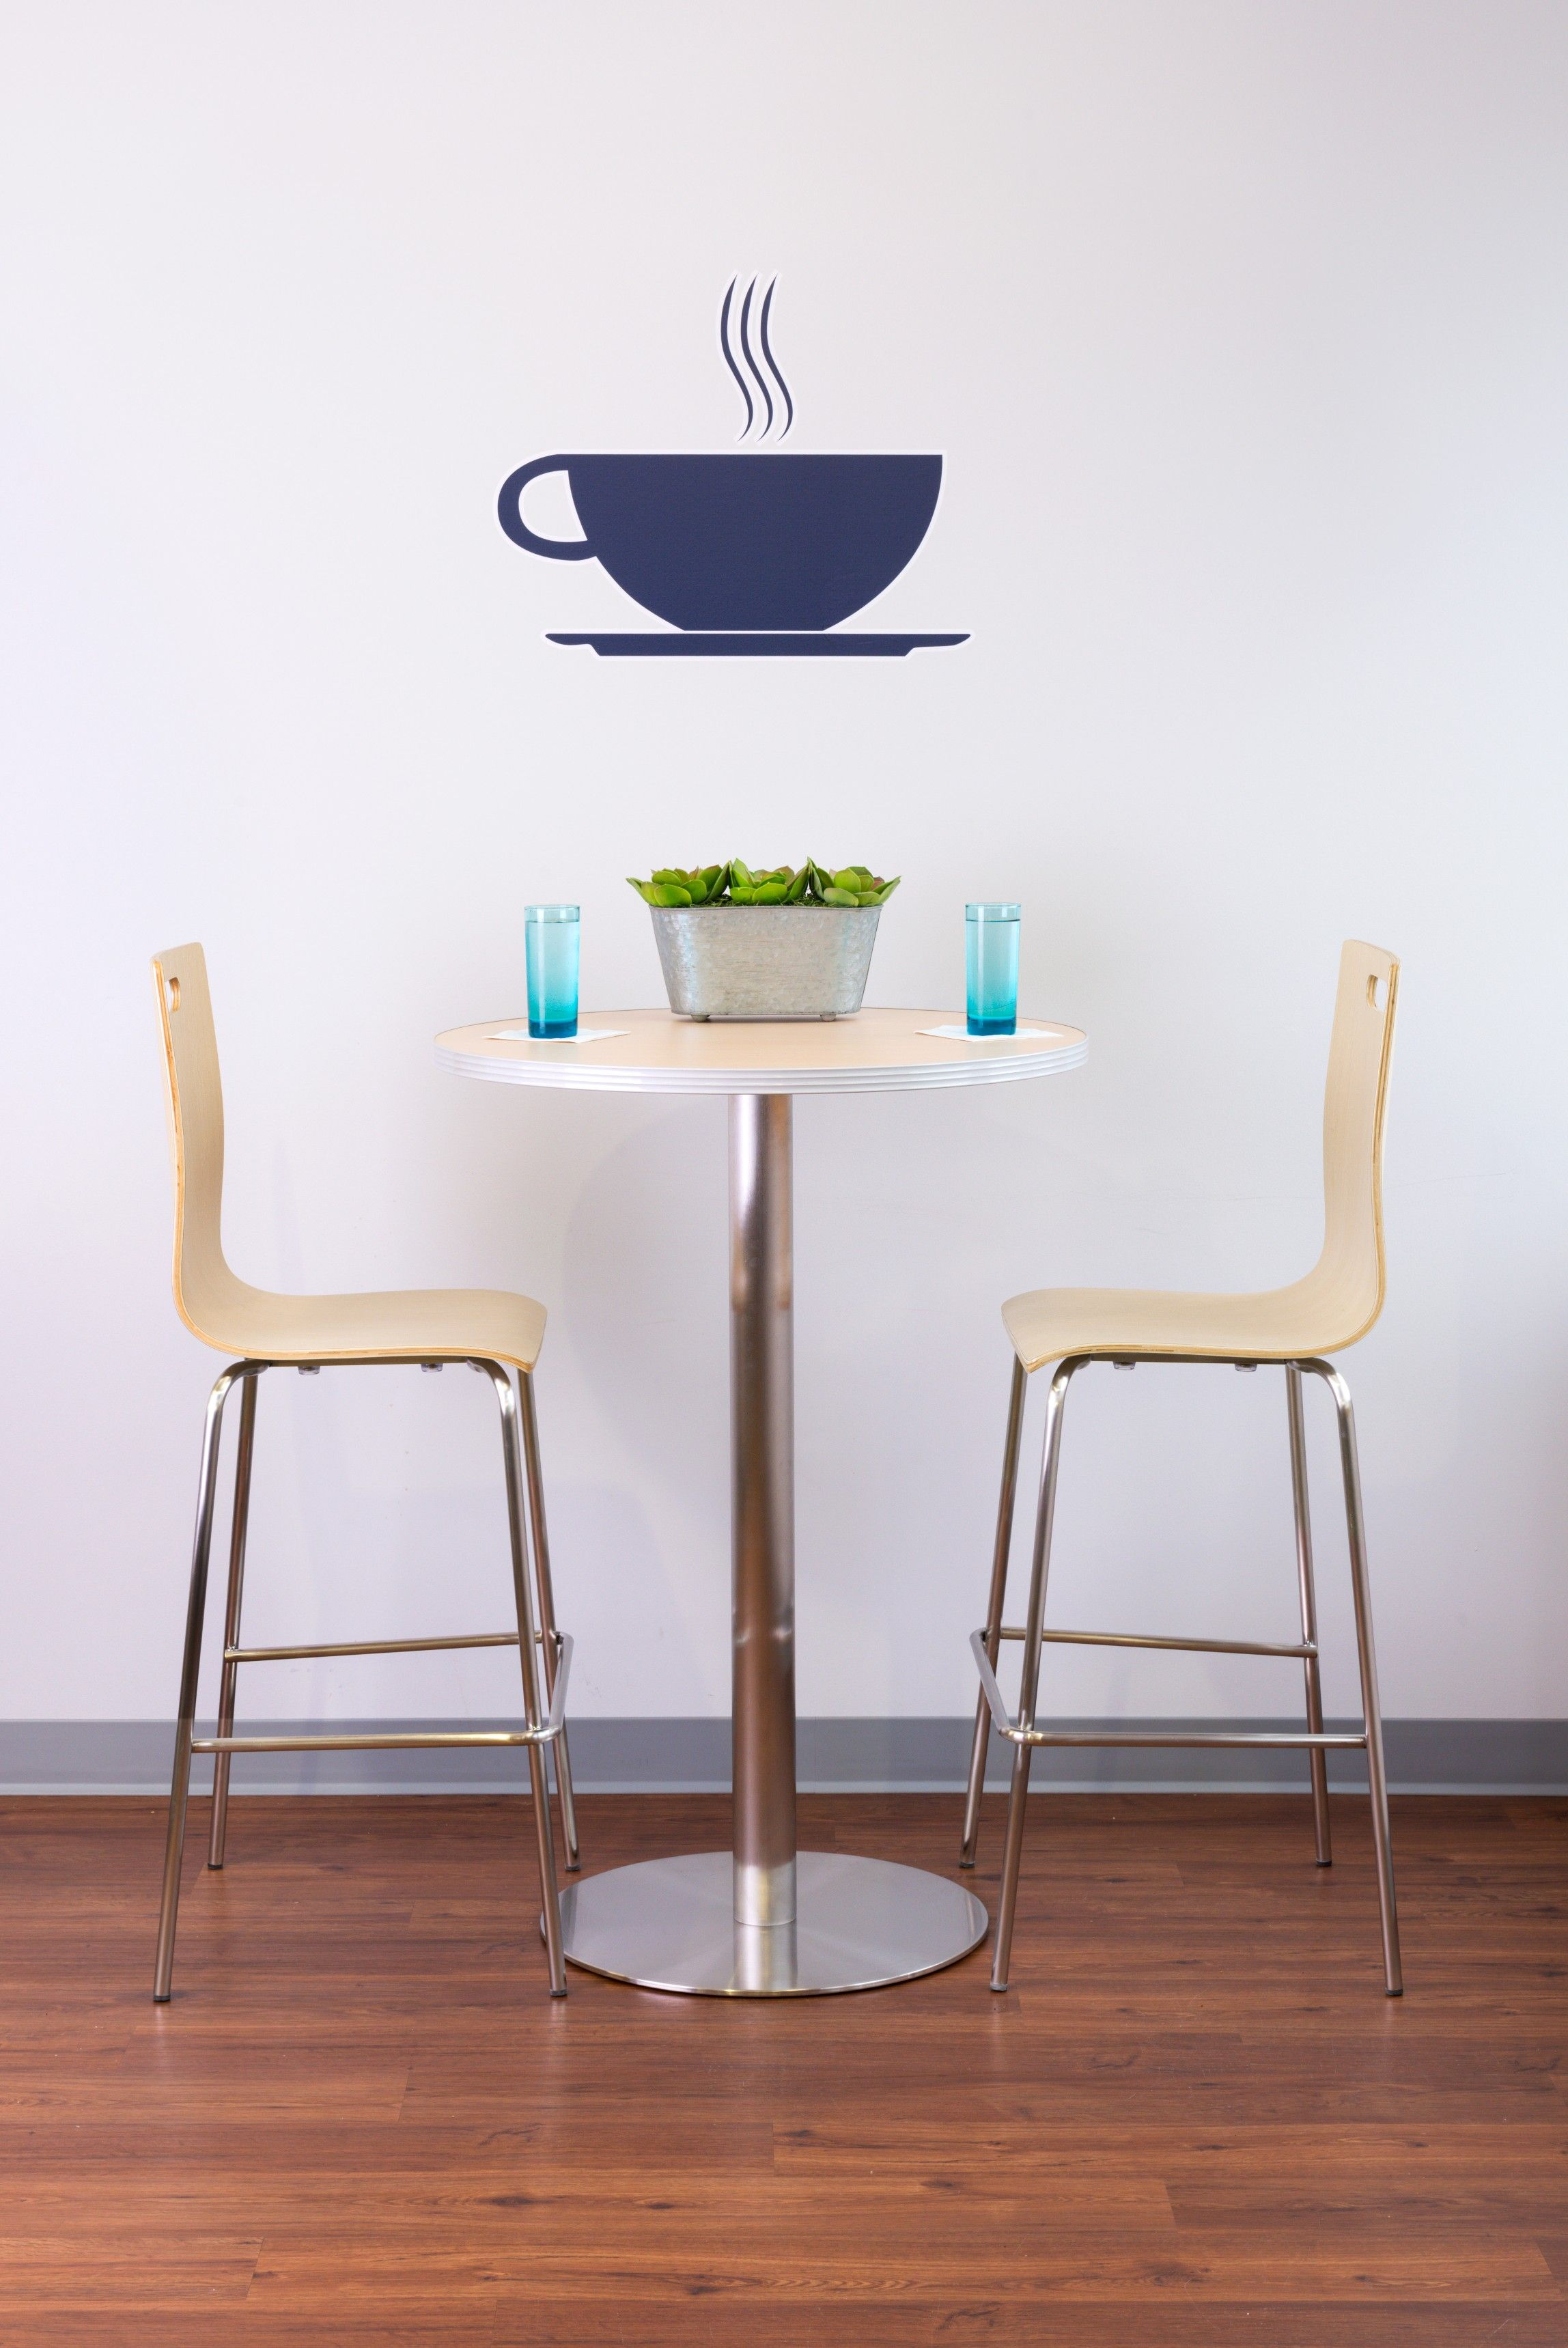 These table and chairs sets are available in a variety of designs